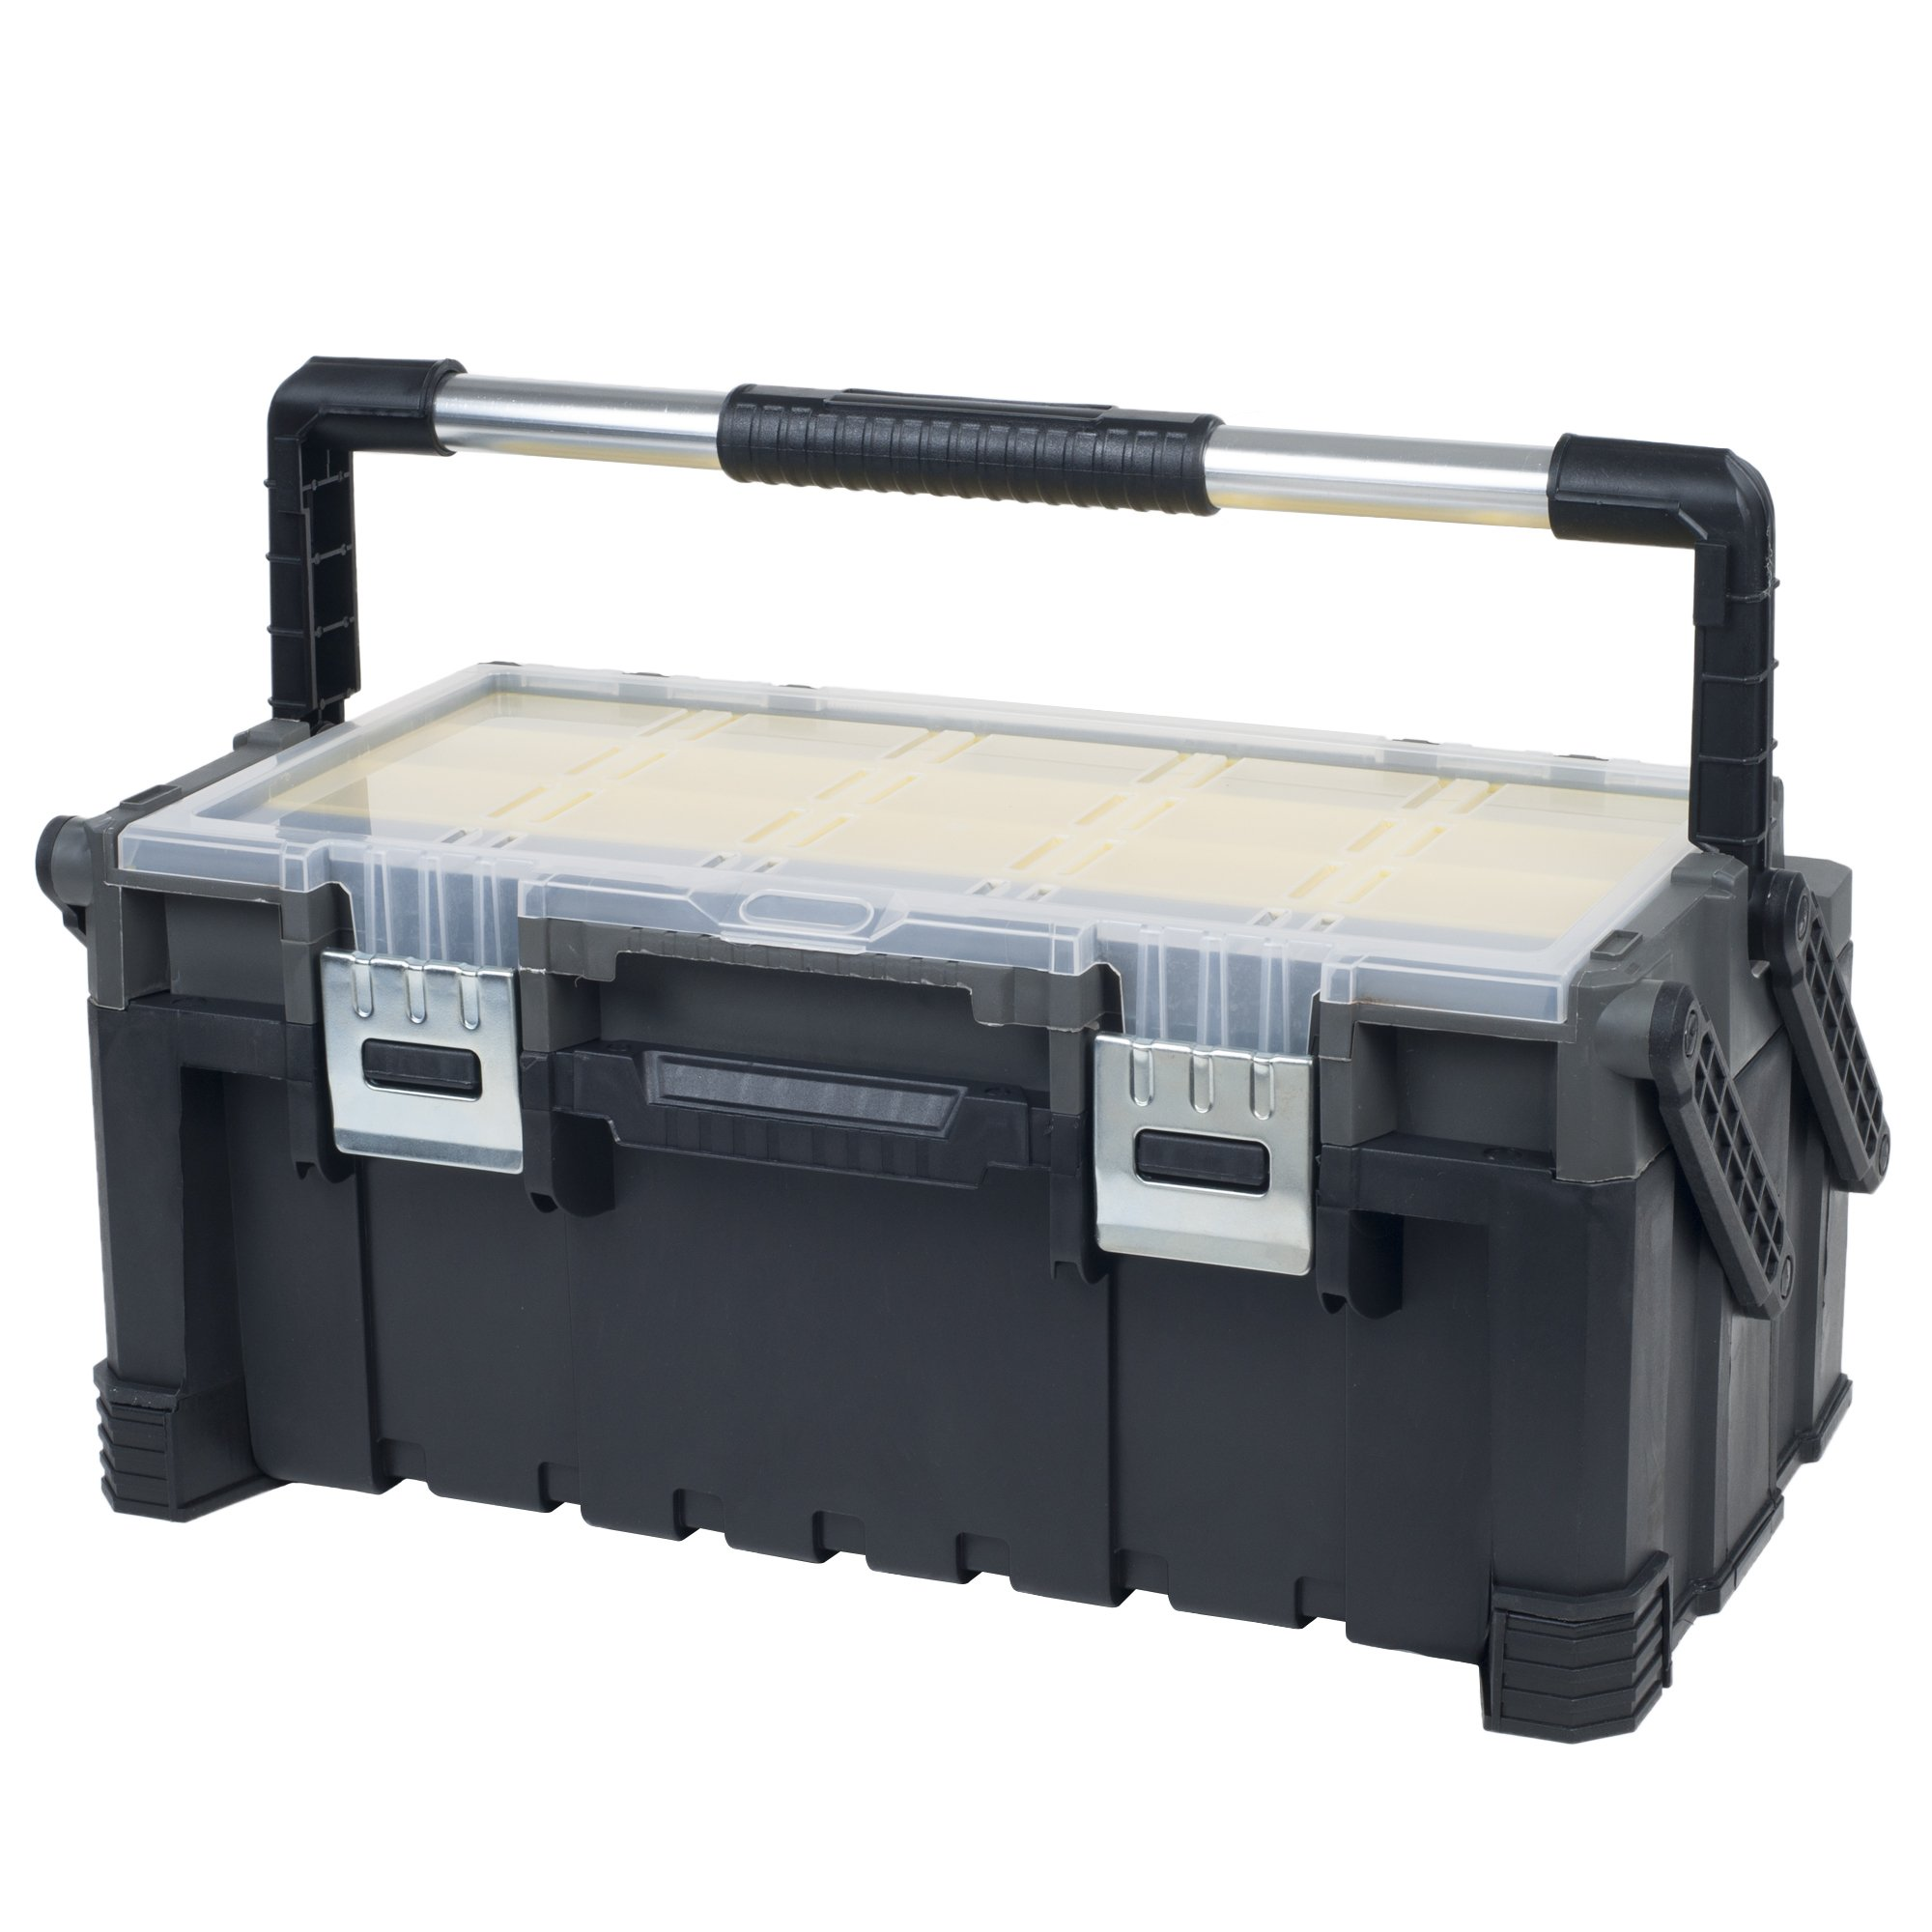 Stalwart 75-MJ5051B Contractor Grade Tool Box - 22 Inch by Stalwart